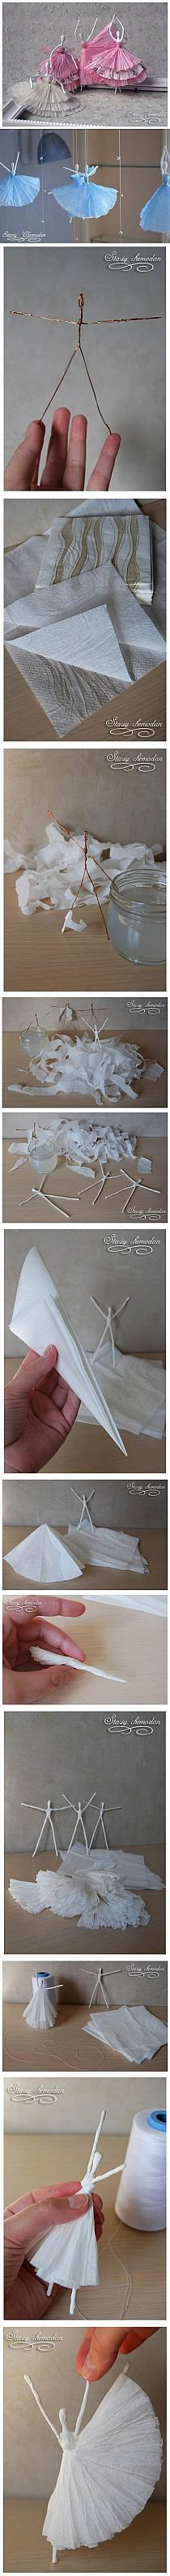 DIY Crafts for Girls - Napkin Paper Ballerina - So simple and crafty! Making these today with my 6 year old daugther! Kids Crafts, Cute Crafts, Diy And Crafts, Arts And Crafts, Simple Crafts, Diy Projects To Try, Craft Projects, Craft Ideas, Craft Tutorials